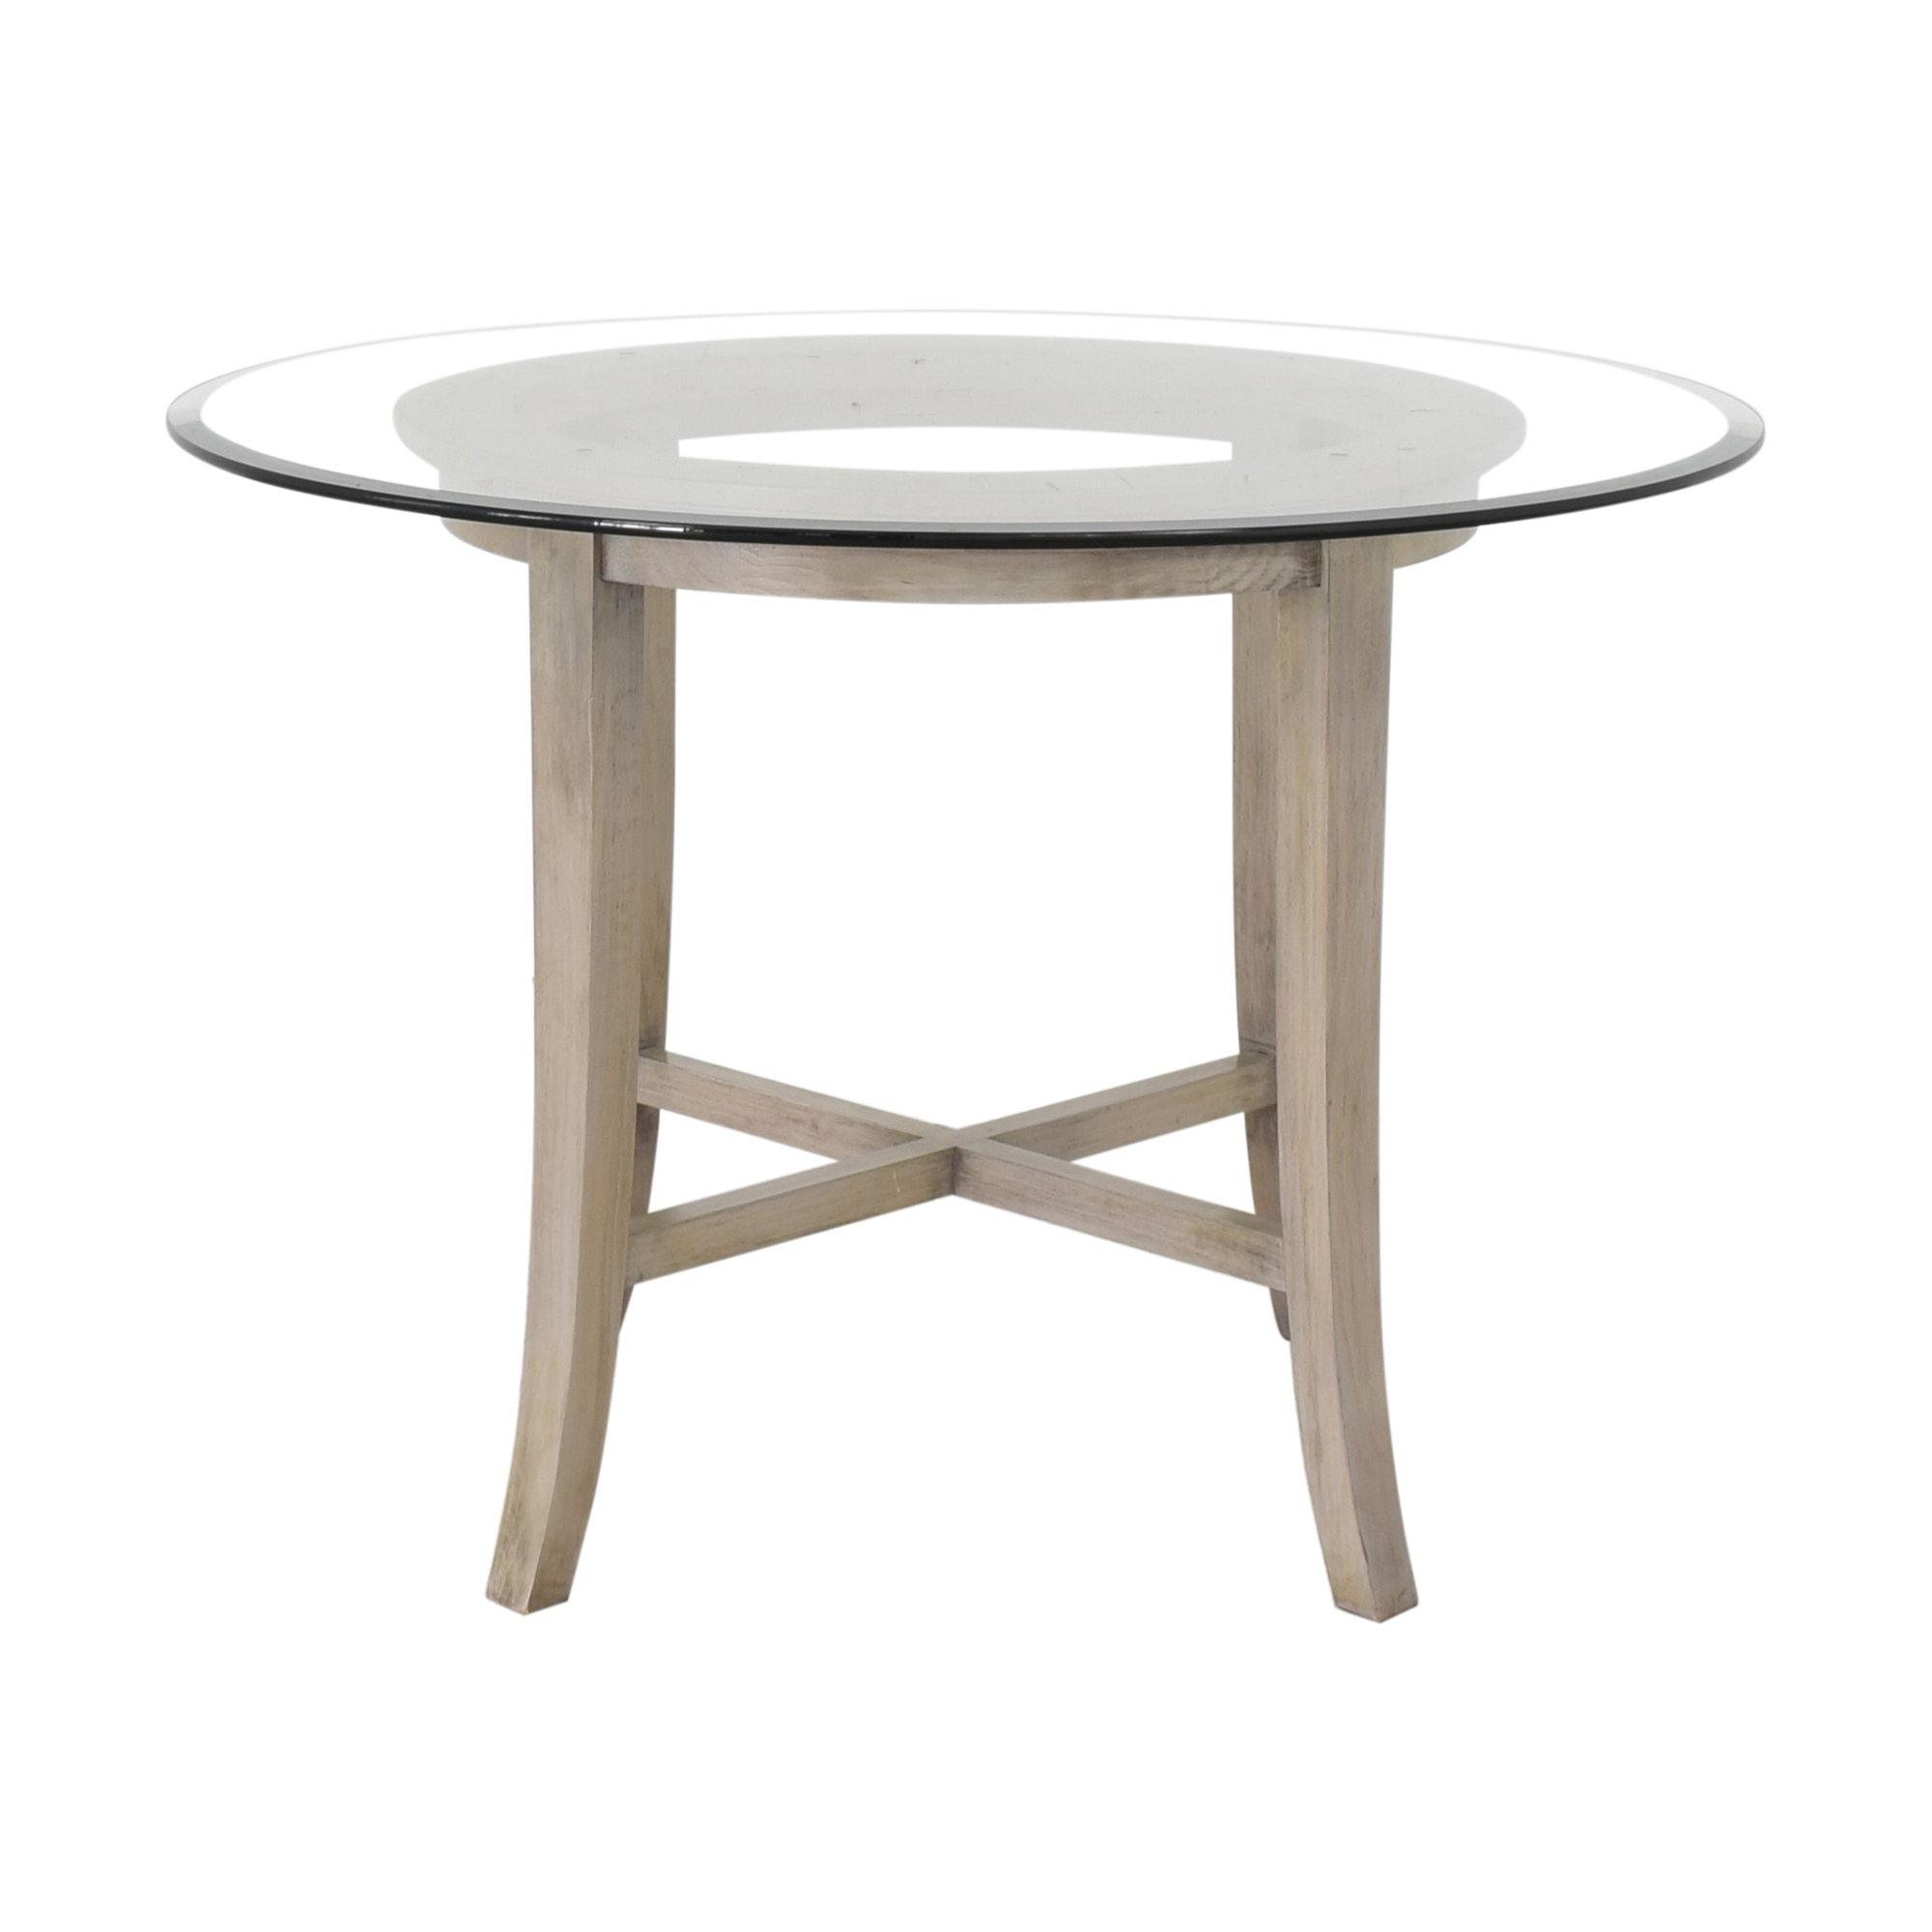 Crate & Barrel Crate & Barrel Halo Grey Round Dining Table with Glass Top discount